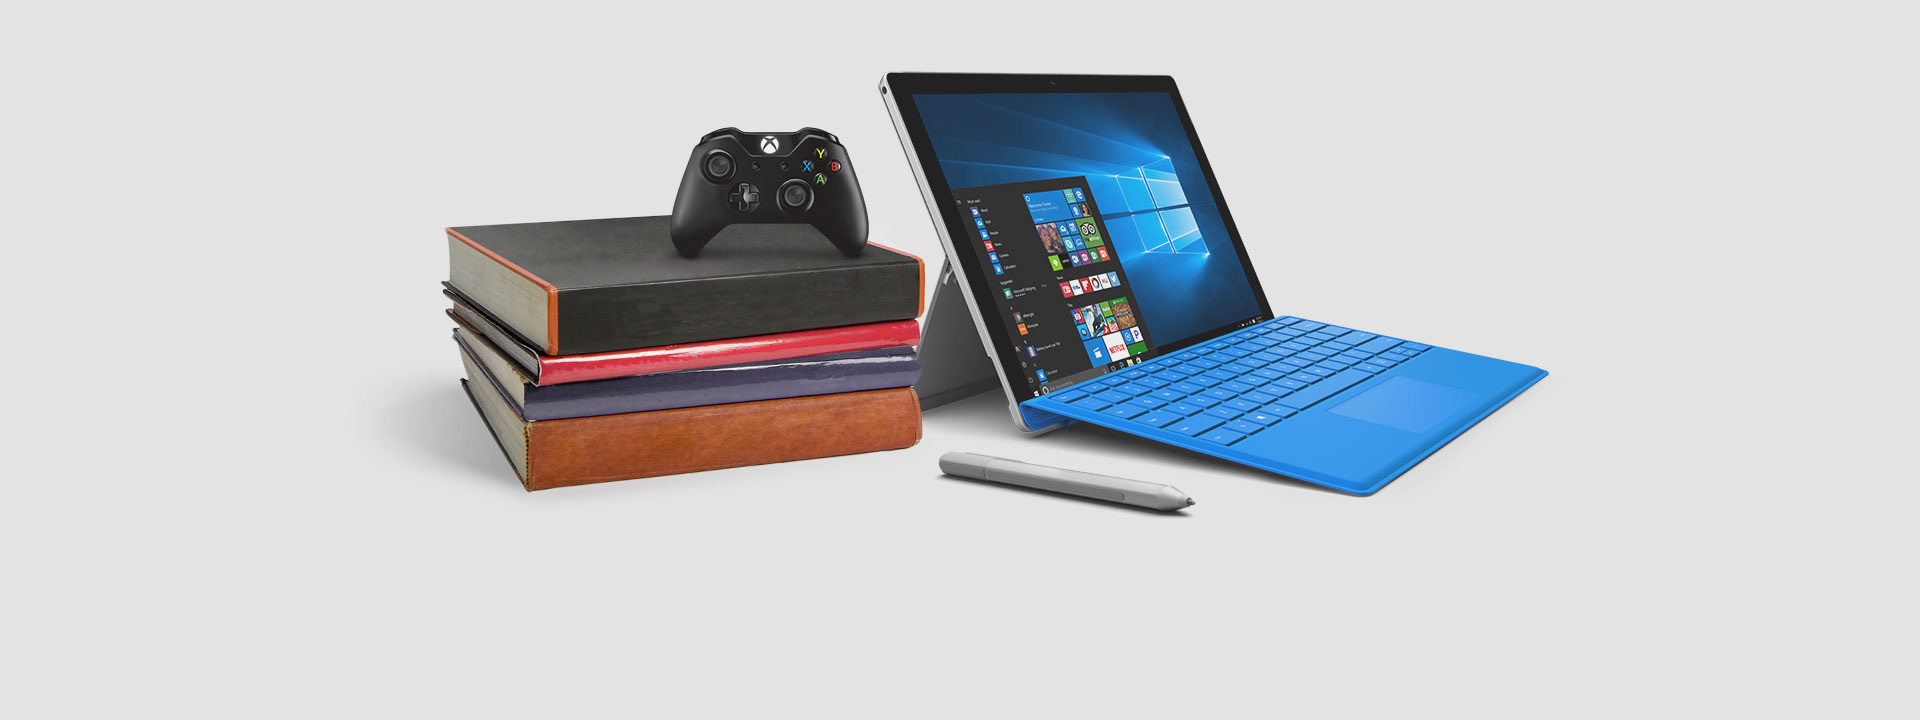 Surface Pro 4 with Xbox controller, learn about our limited-time offer